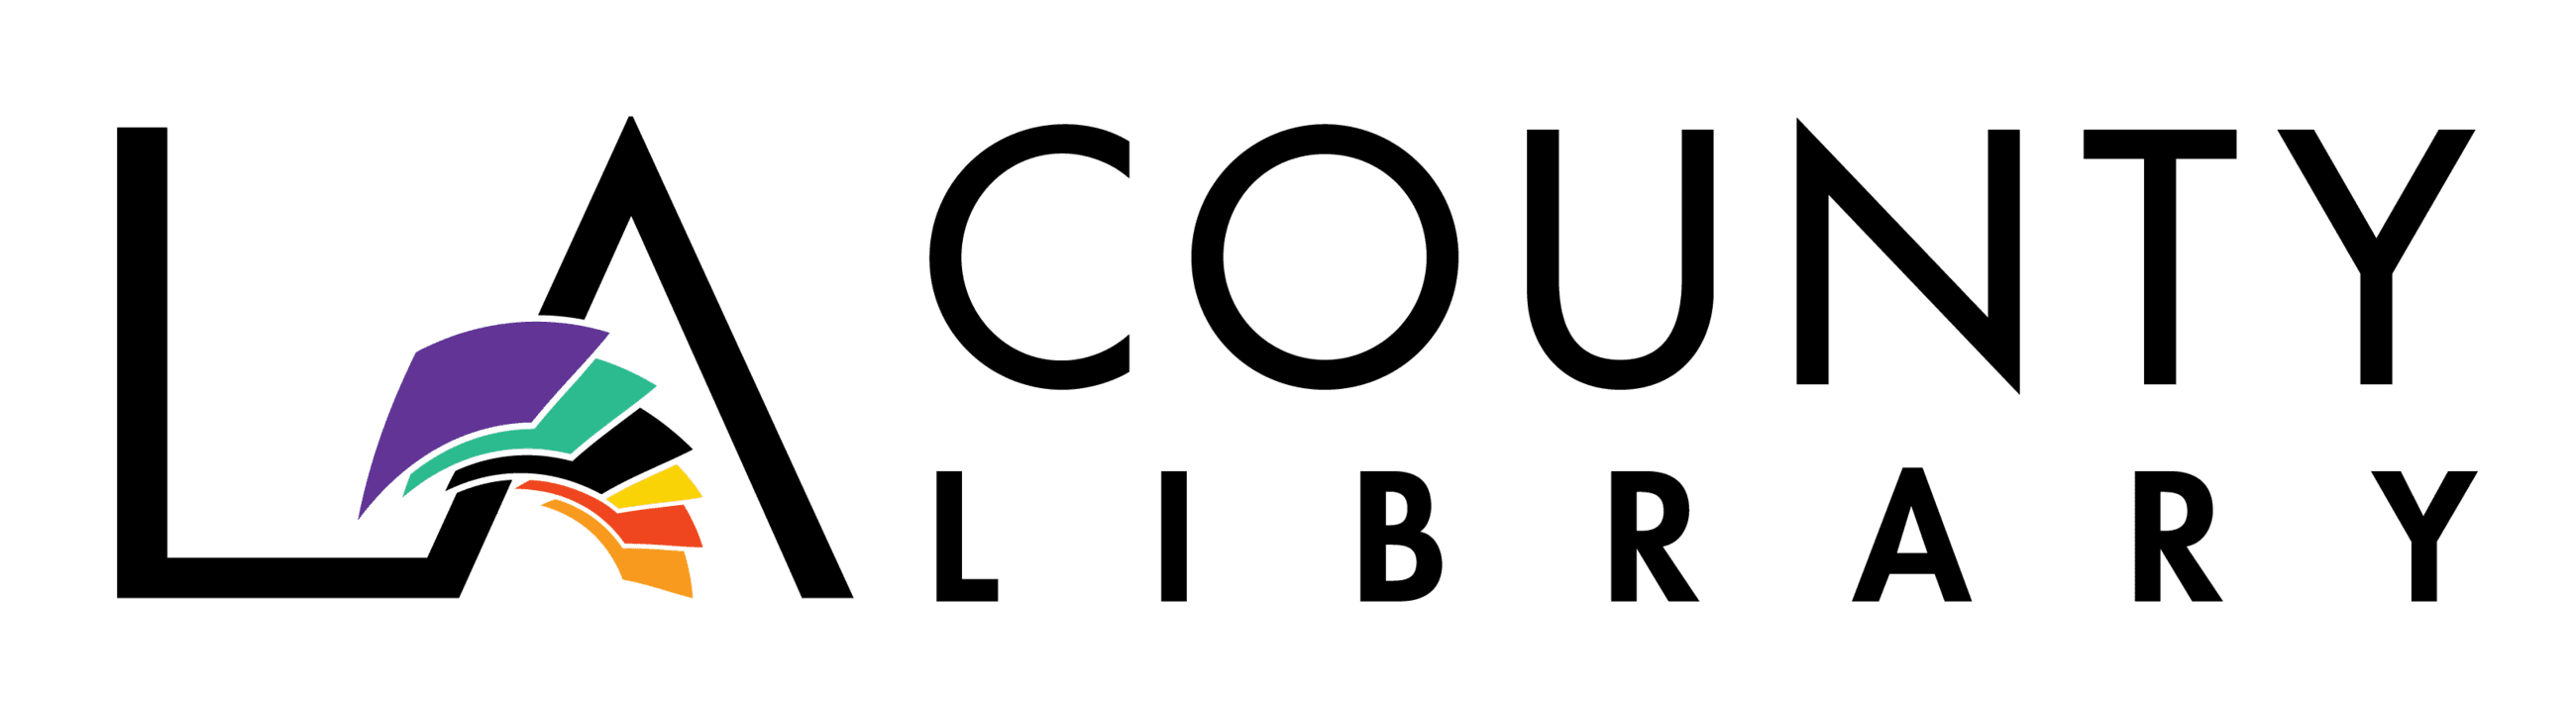 LibraryLogo_WIDE